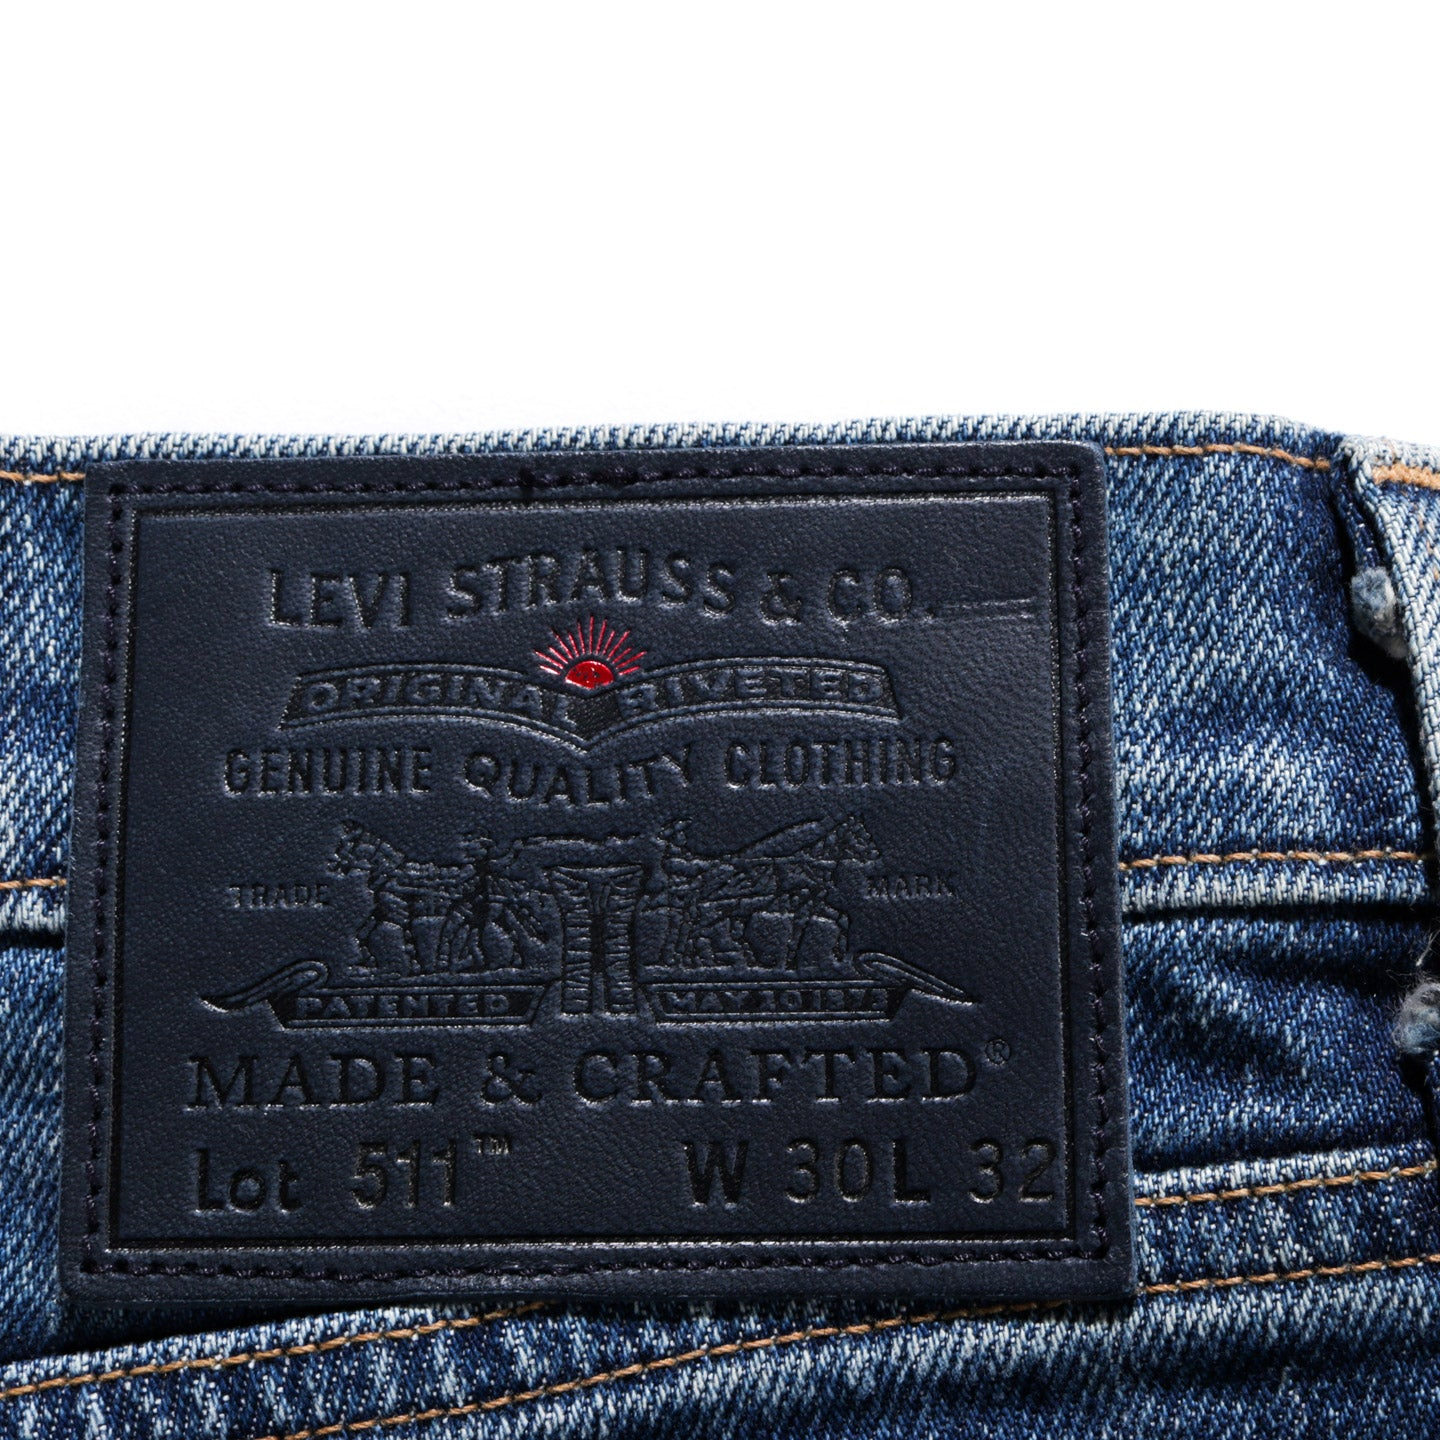 LEVI'S MADE & CRAFTED 511 FUJI SELVEDGE